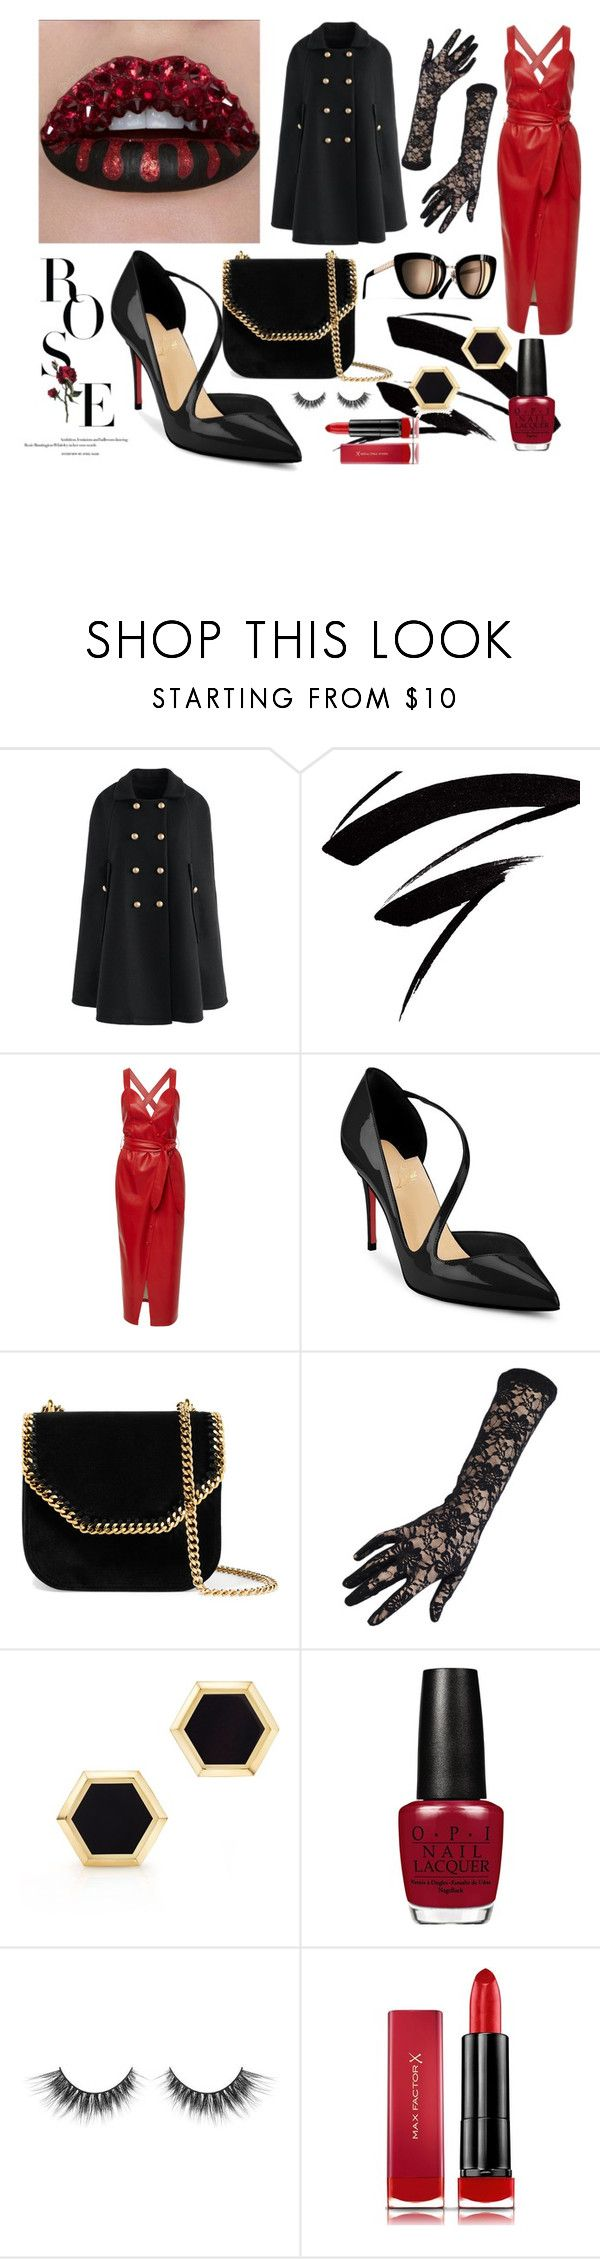 """Night out"" by chalotteleah on Polyvore featuring Chicwish, Nanushka, Christian Louboutin, STELLA McCARTNEY, Black, Birks and Max Factor"